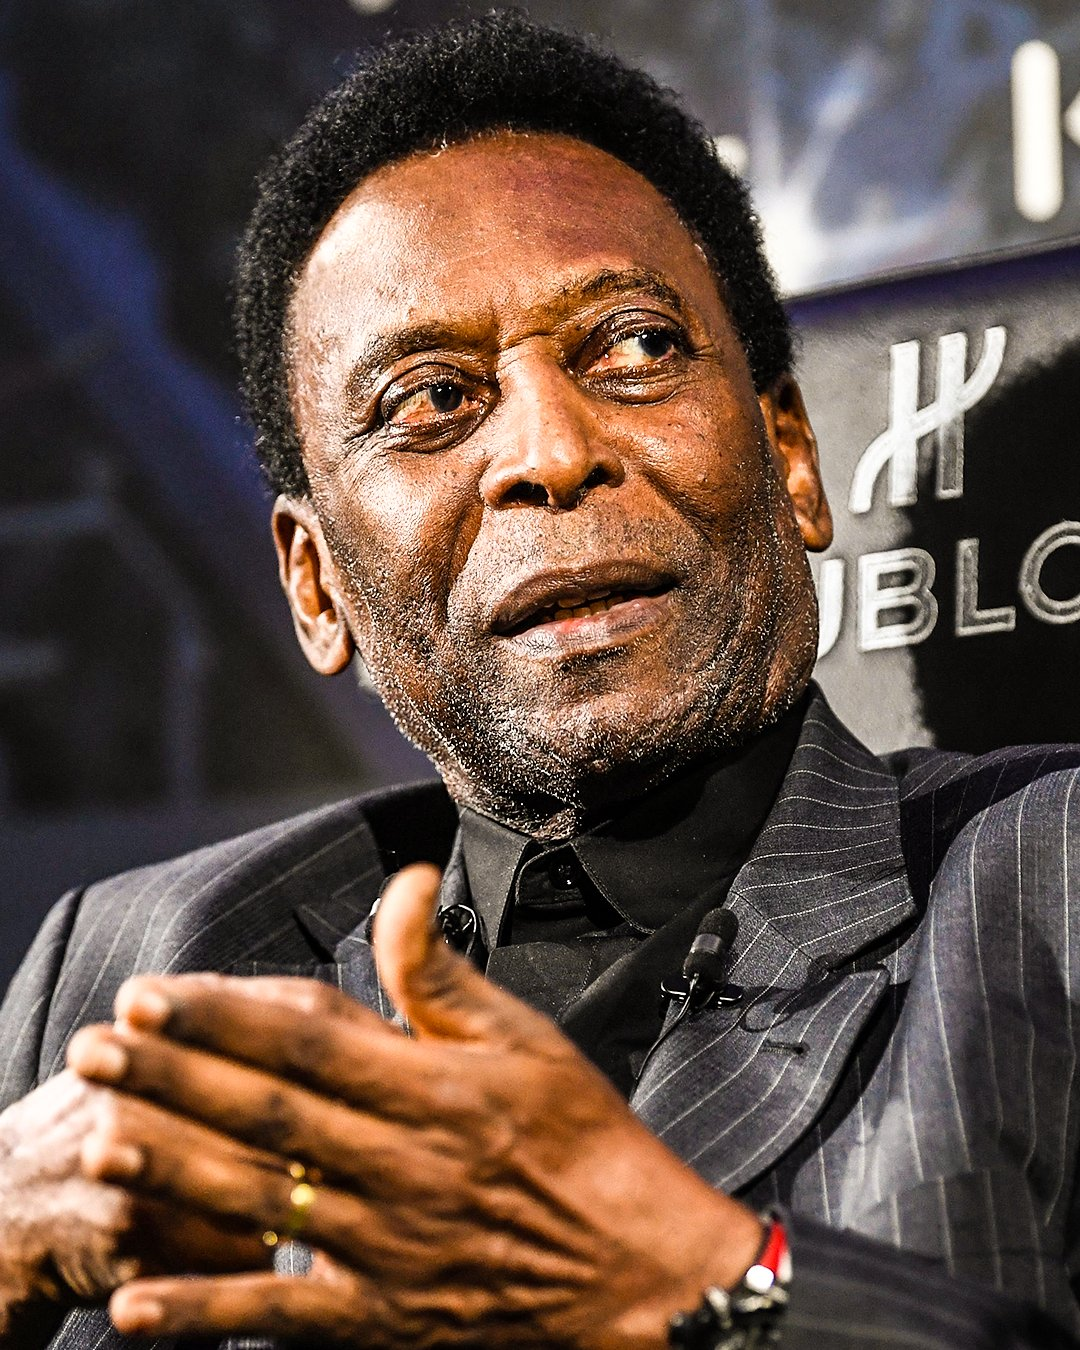 Pele readmitted to Intensive Care after being discharged earlier this week